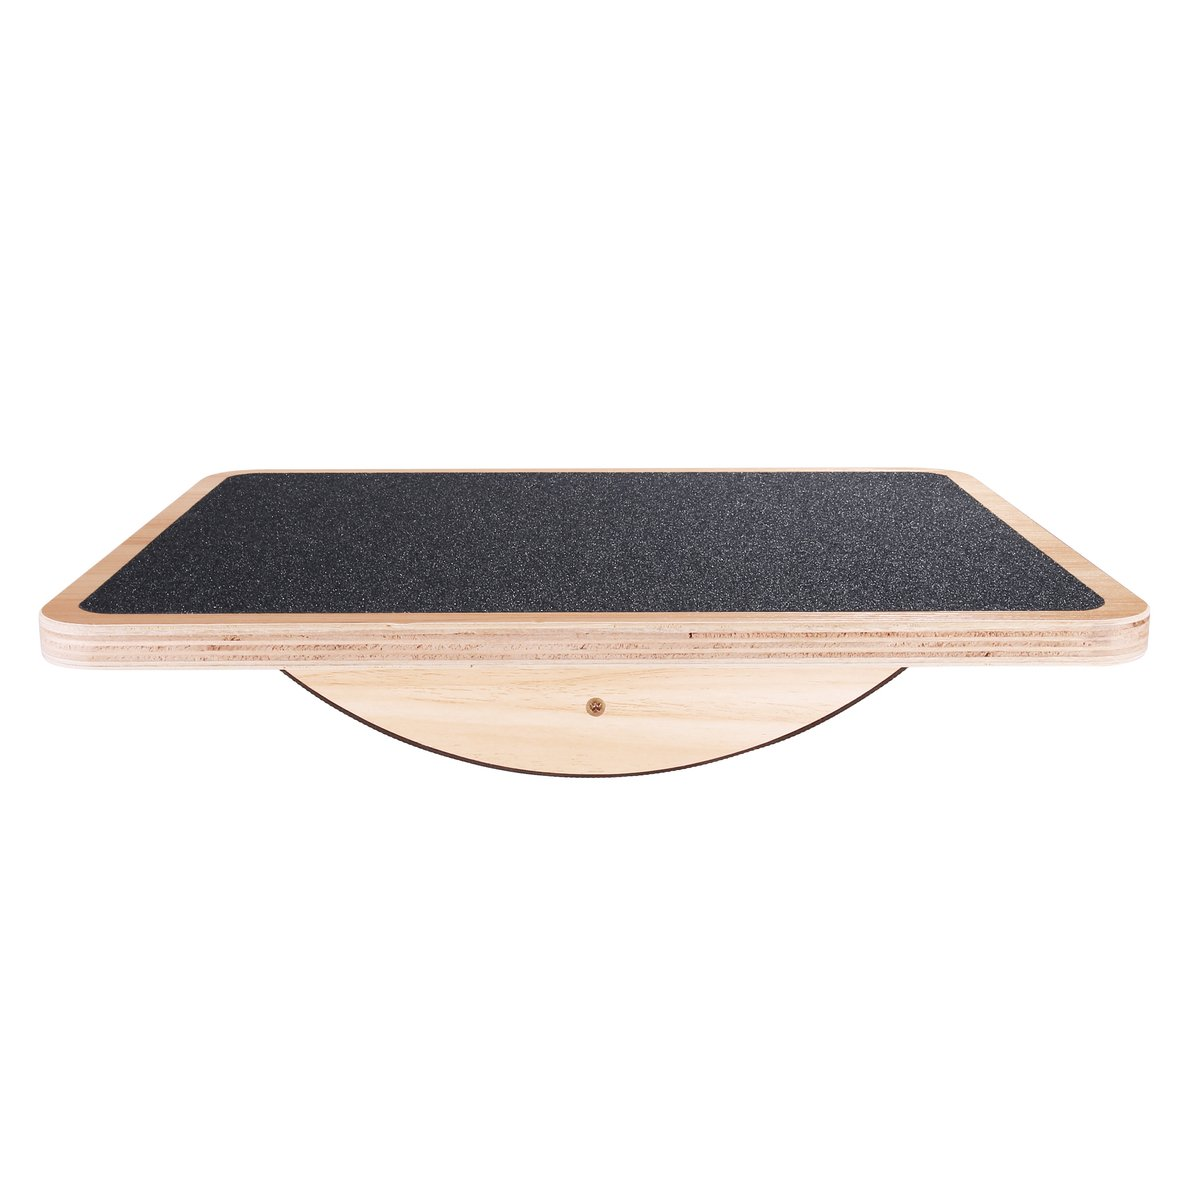 "Professional Wooden Balance Board, Rocker Board, 17.5"" Wood Standing Desk Accessory, Balancing Trainer Exercise 